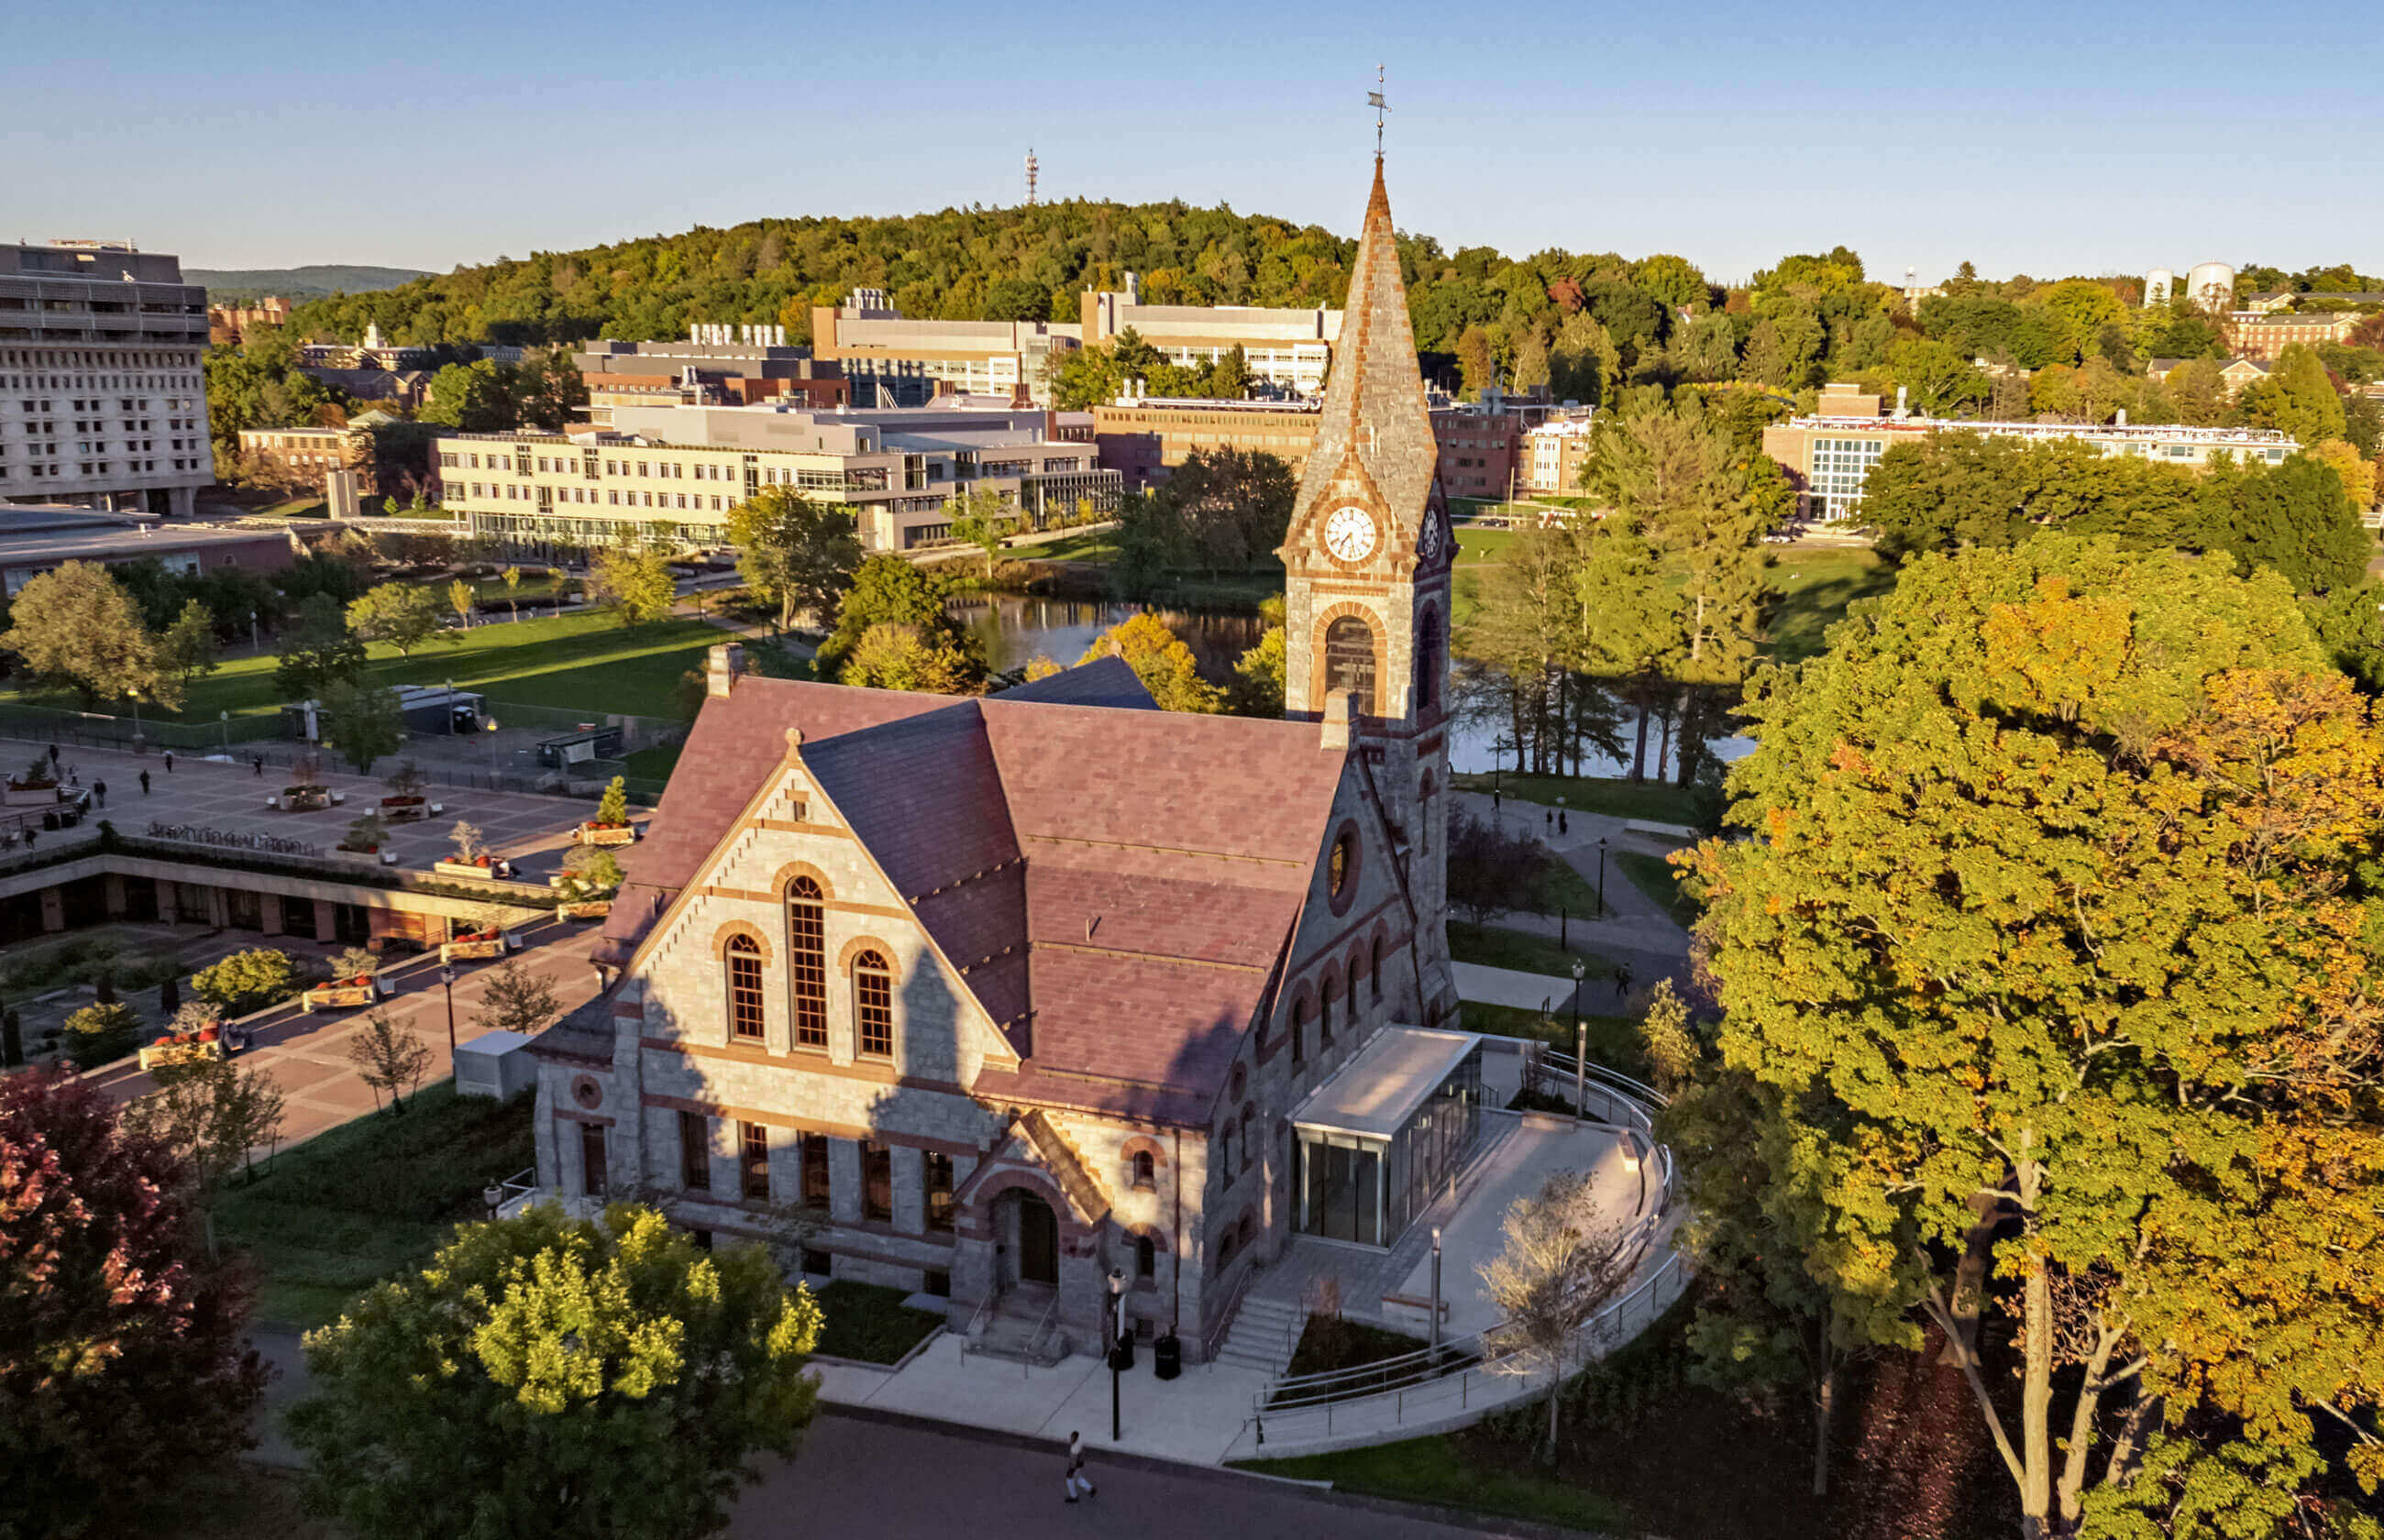 Drone shot of University of Massachusetts' Old Chapel in the summer, with the curved terrace providing access to the new glass entrance.